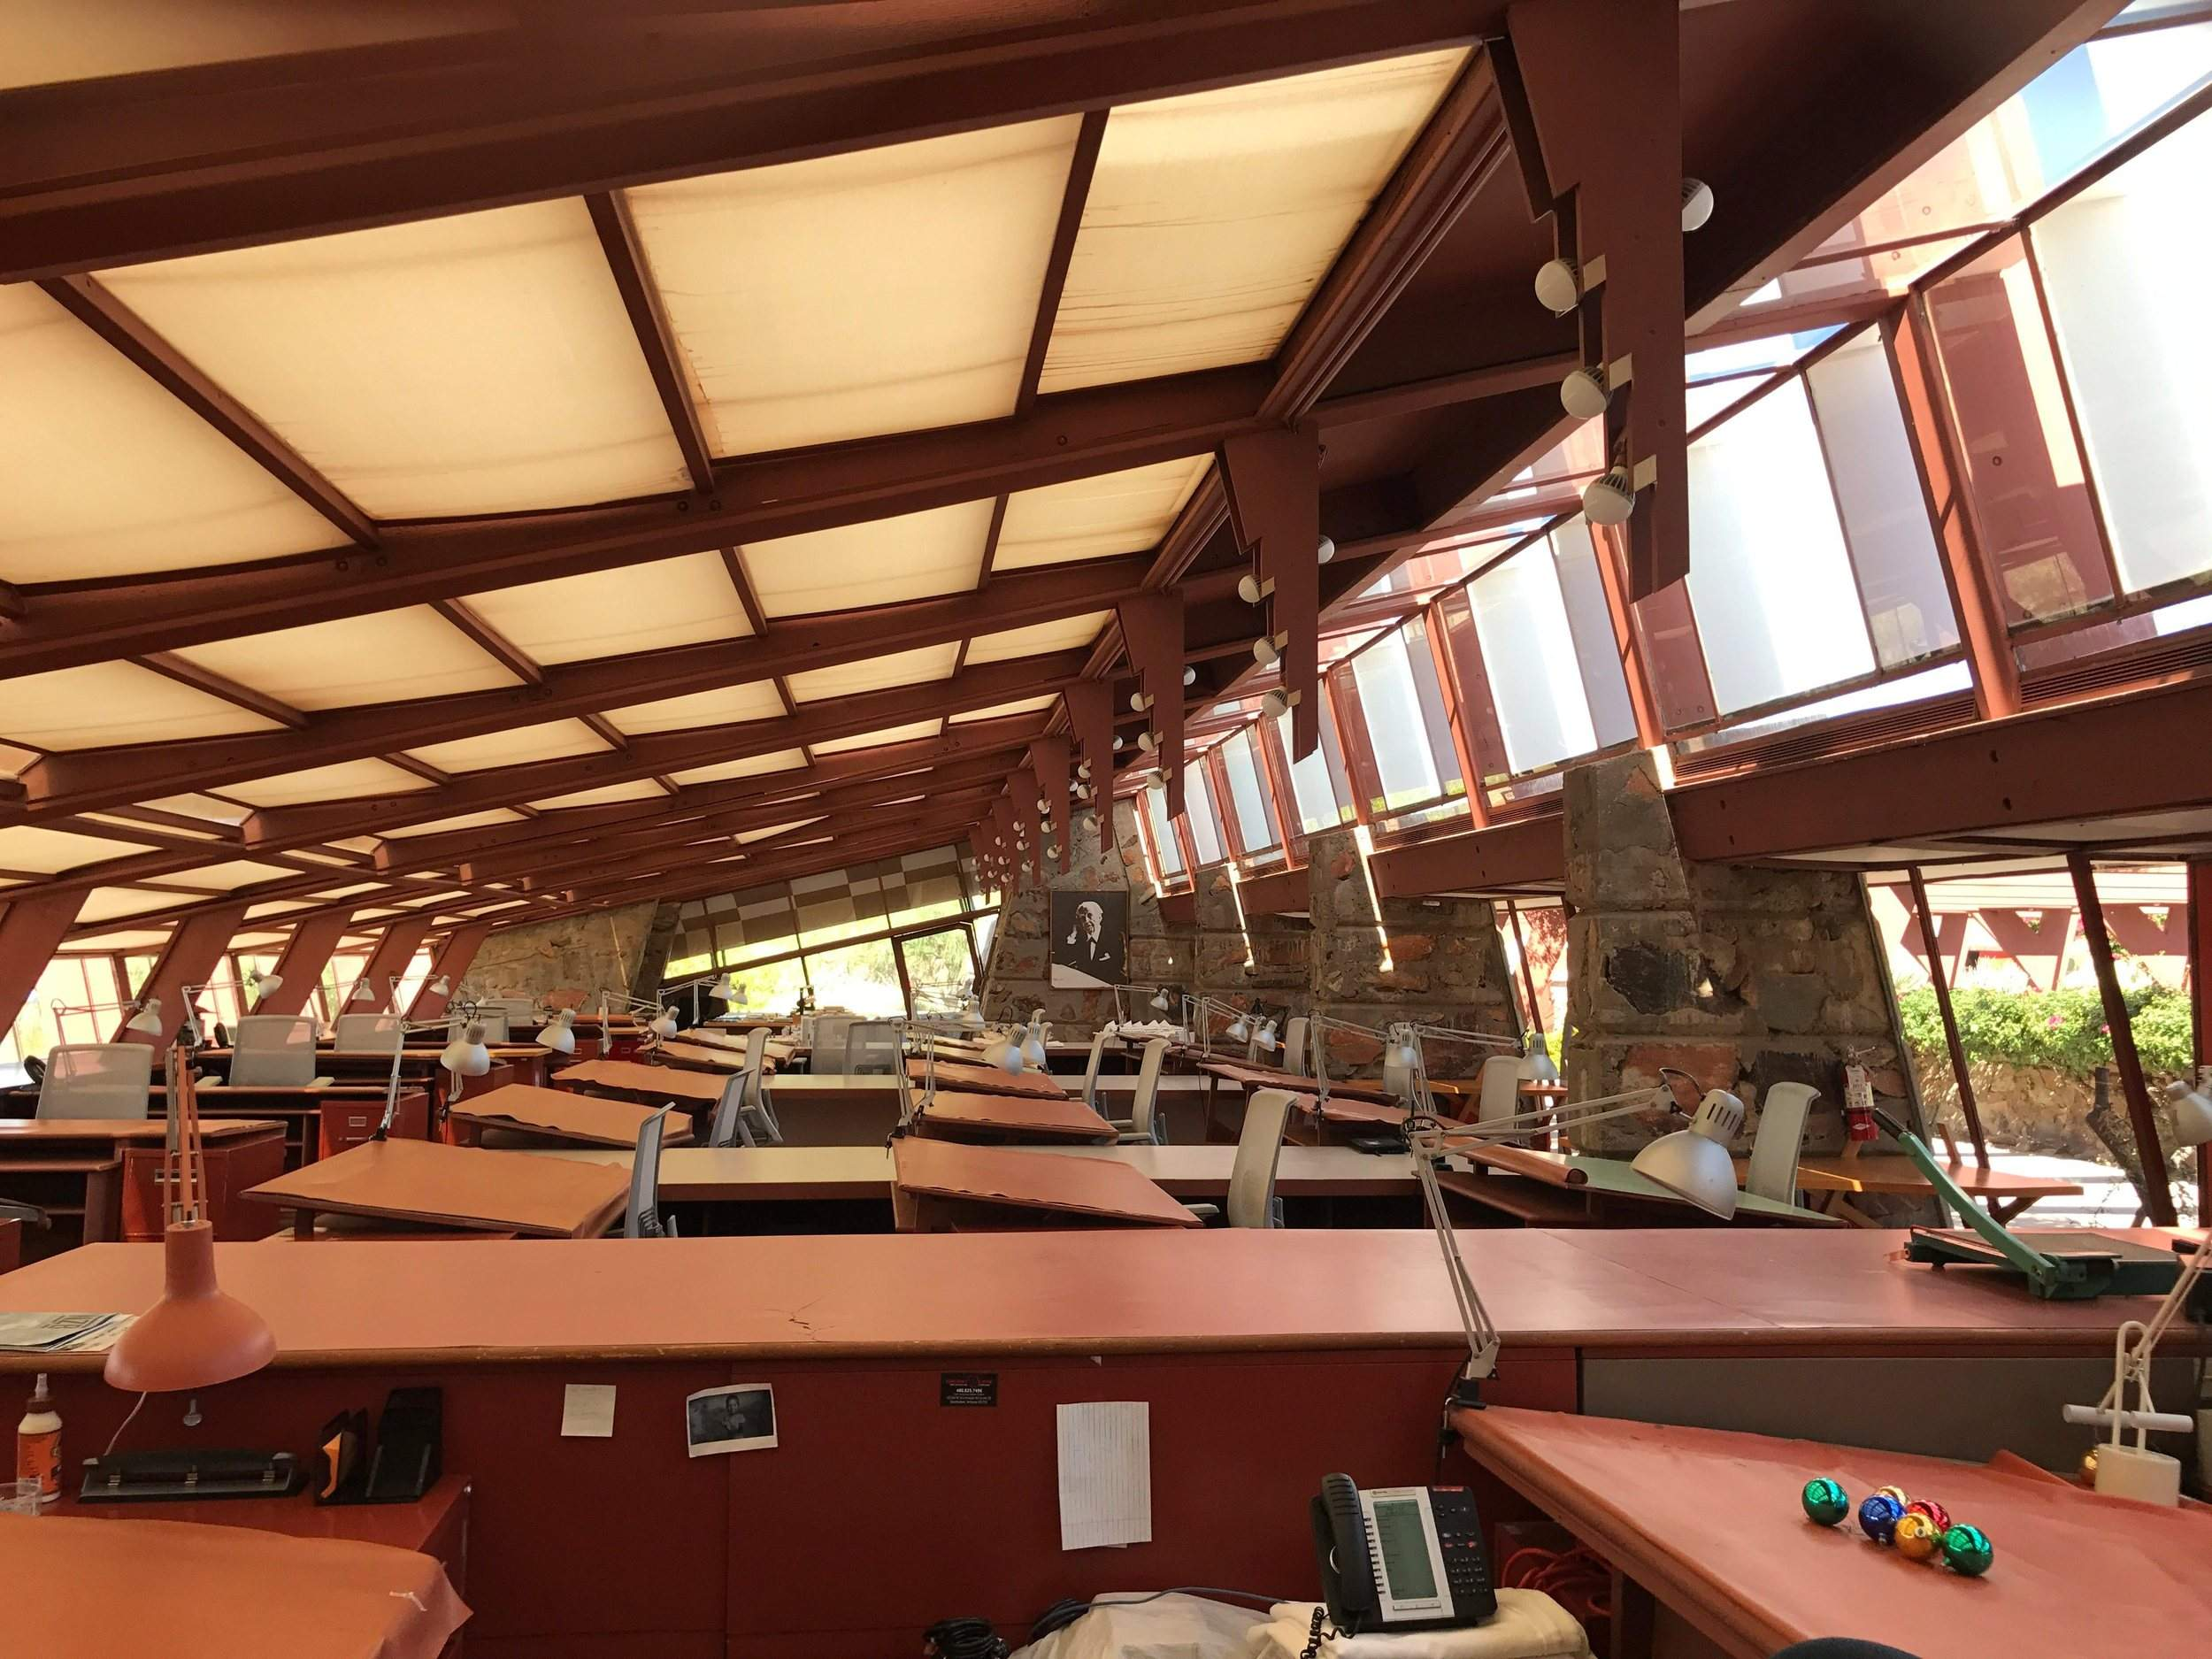 taliesin west a magnet for fans of architect frank lloyd wright